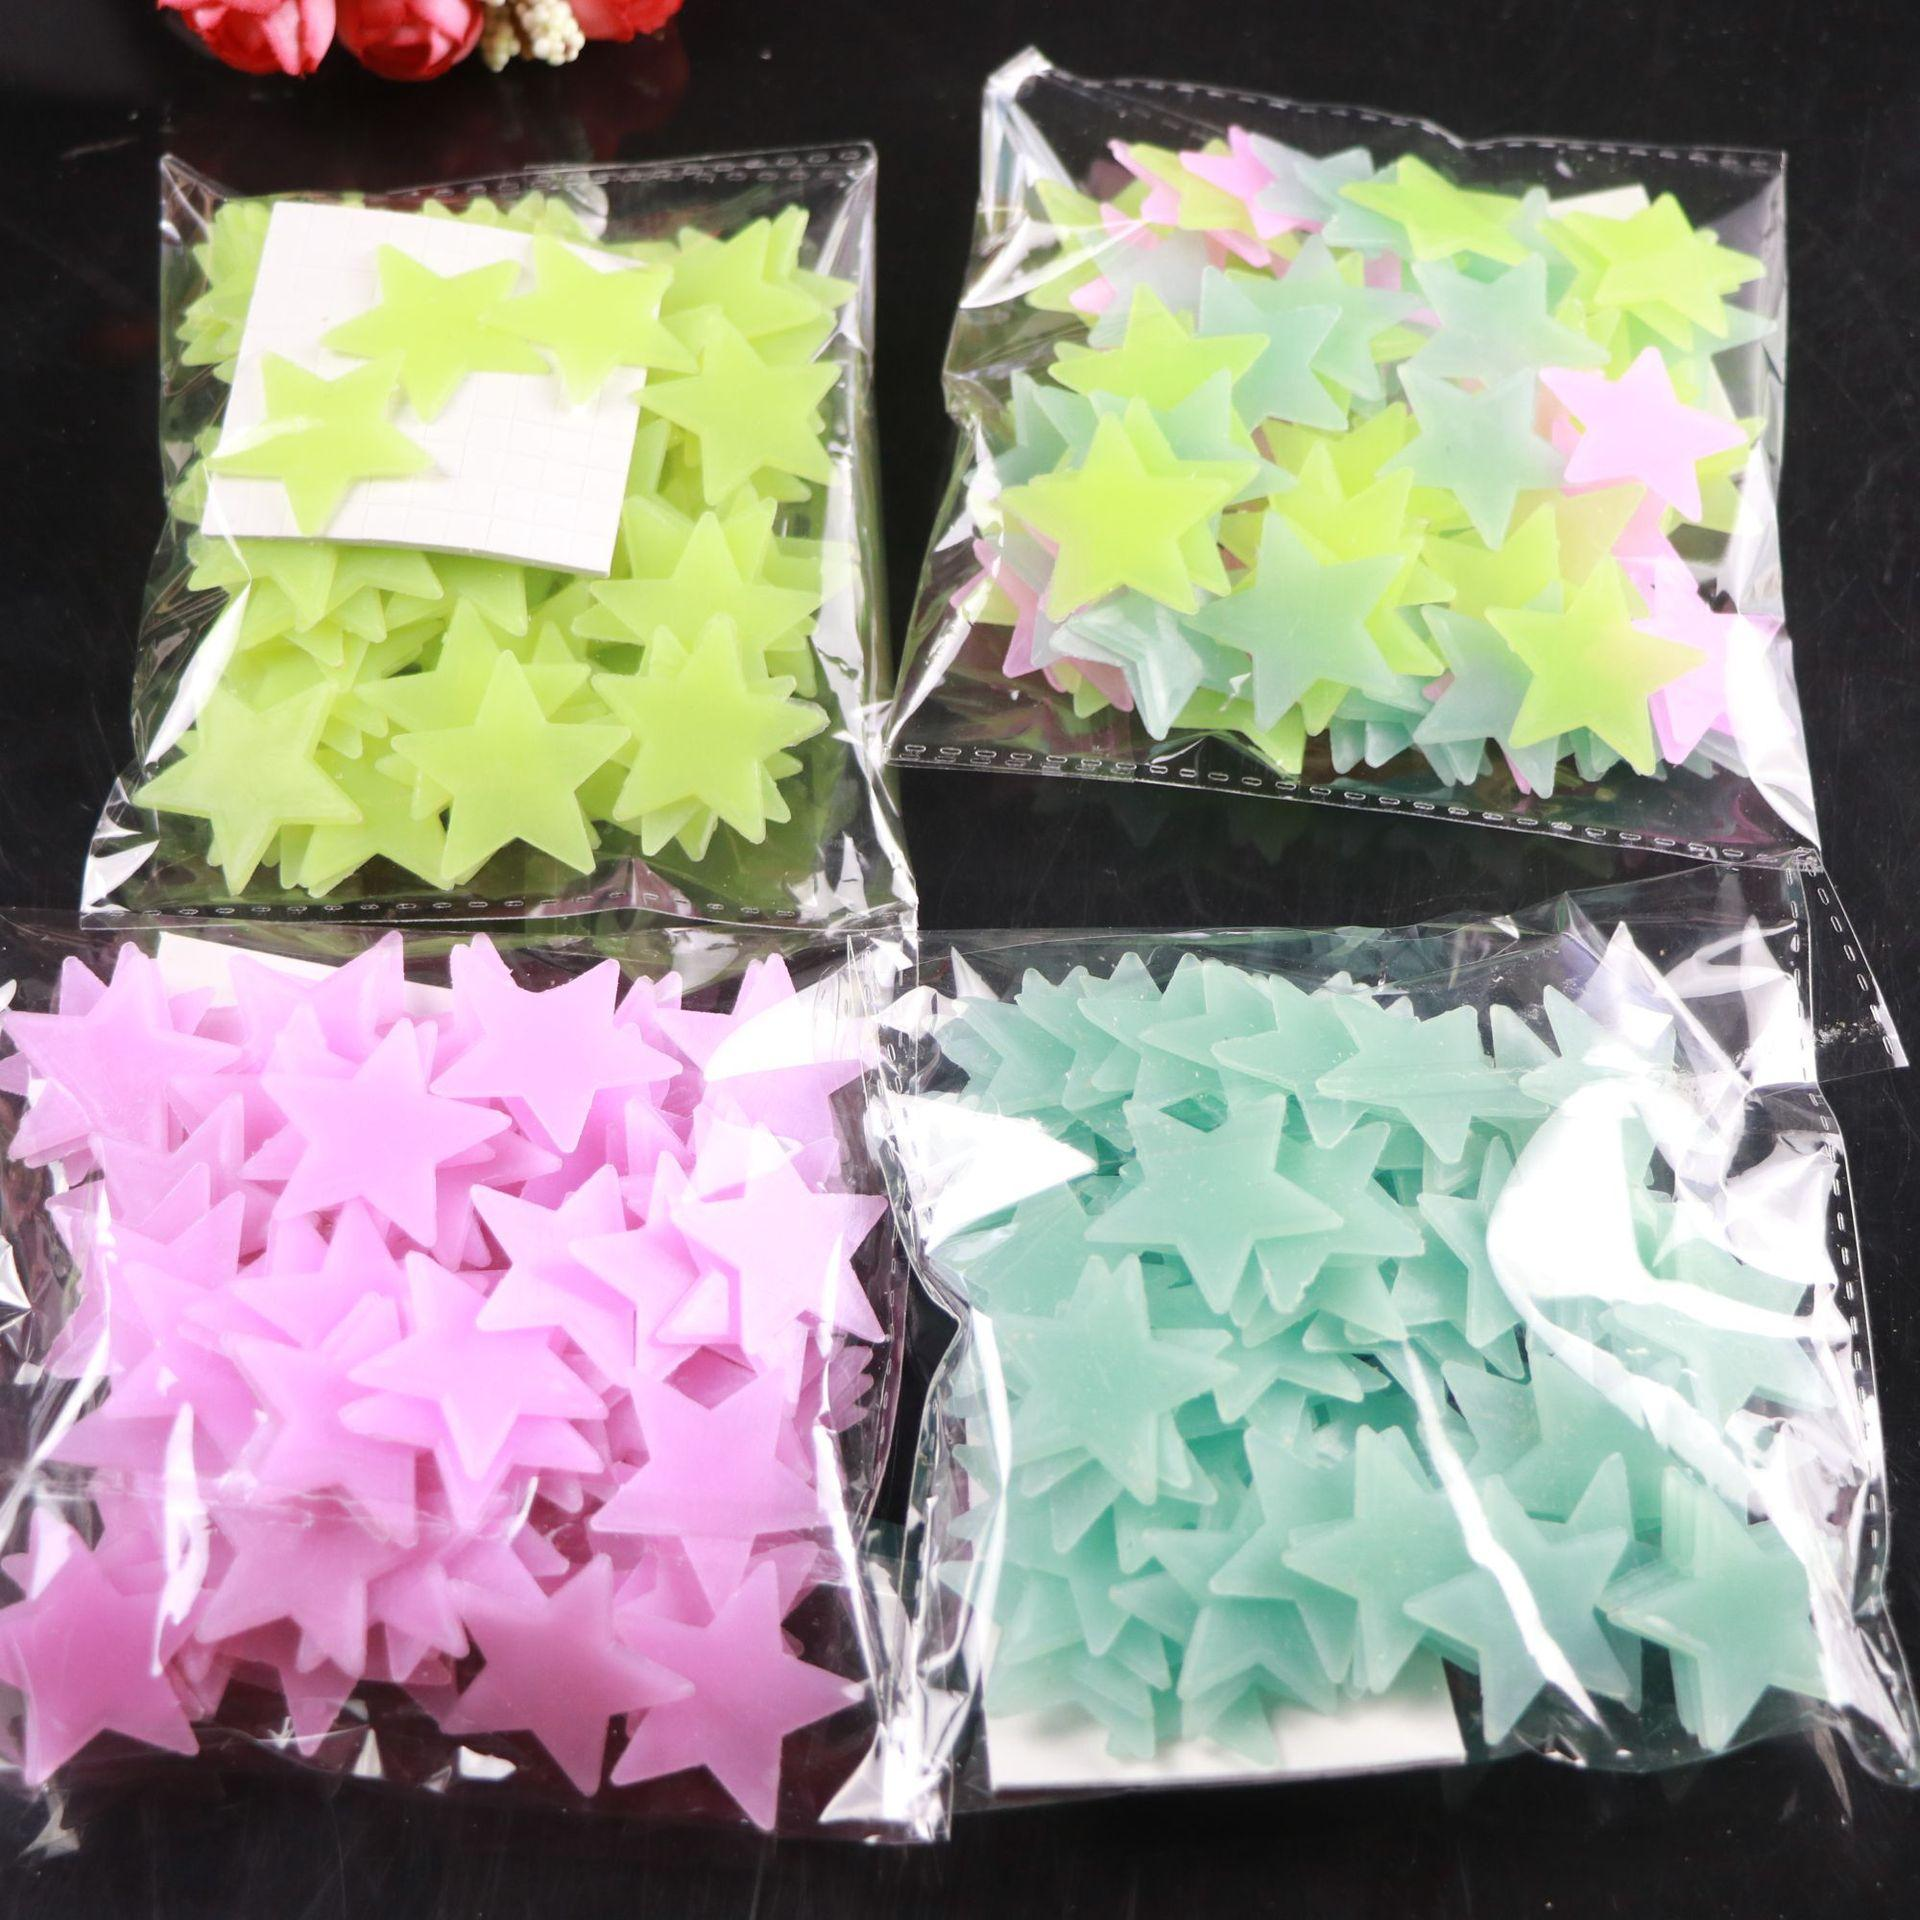 100 pcs/Bag 3D Stars Glow in The Dark Luminous on Wall Stickers for Kids Room living room Wall Decal Home Decoration Poster